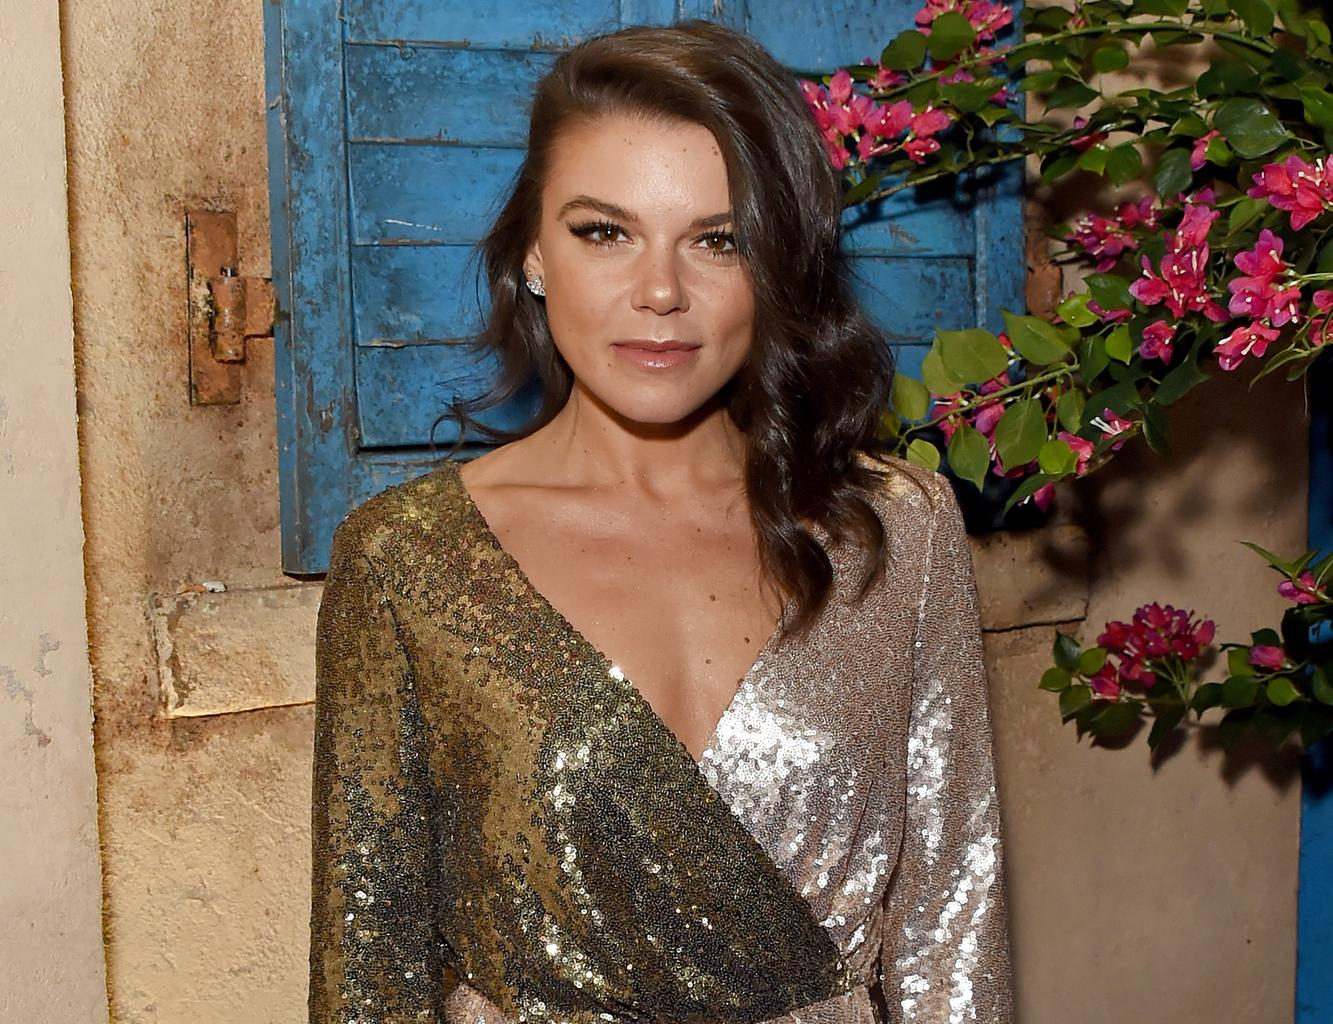 Former Corrie star Faye Brookes goes public with new romance following Gareth Gates split